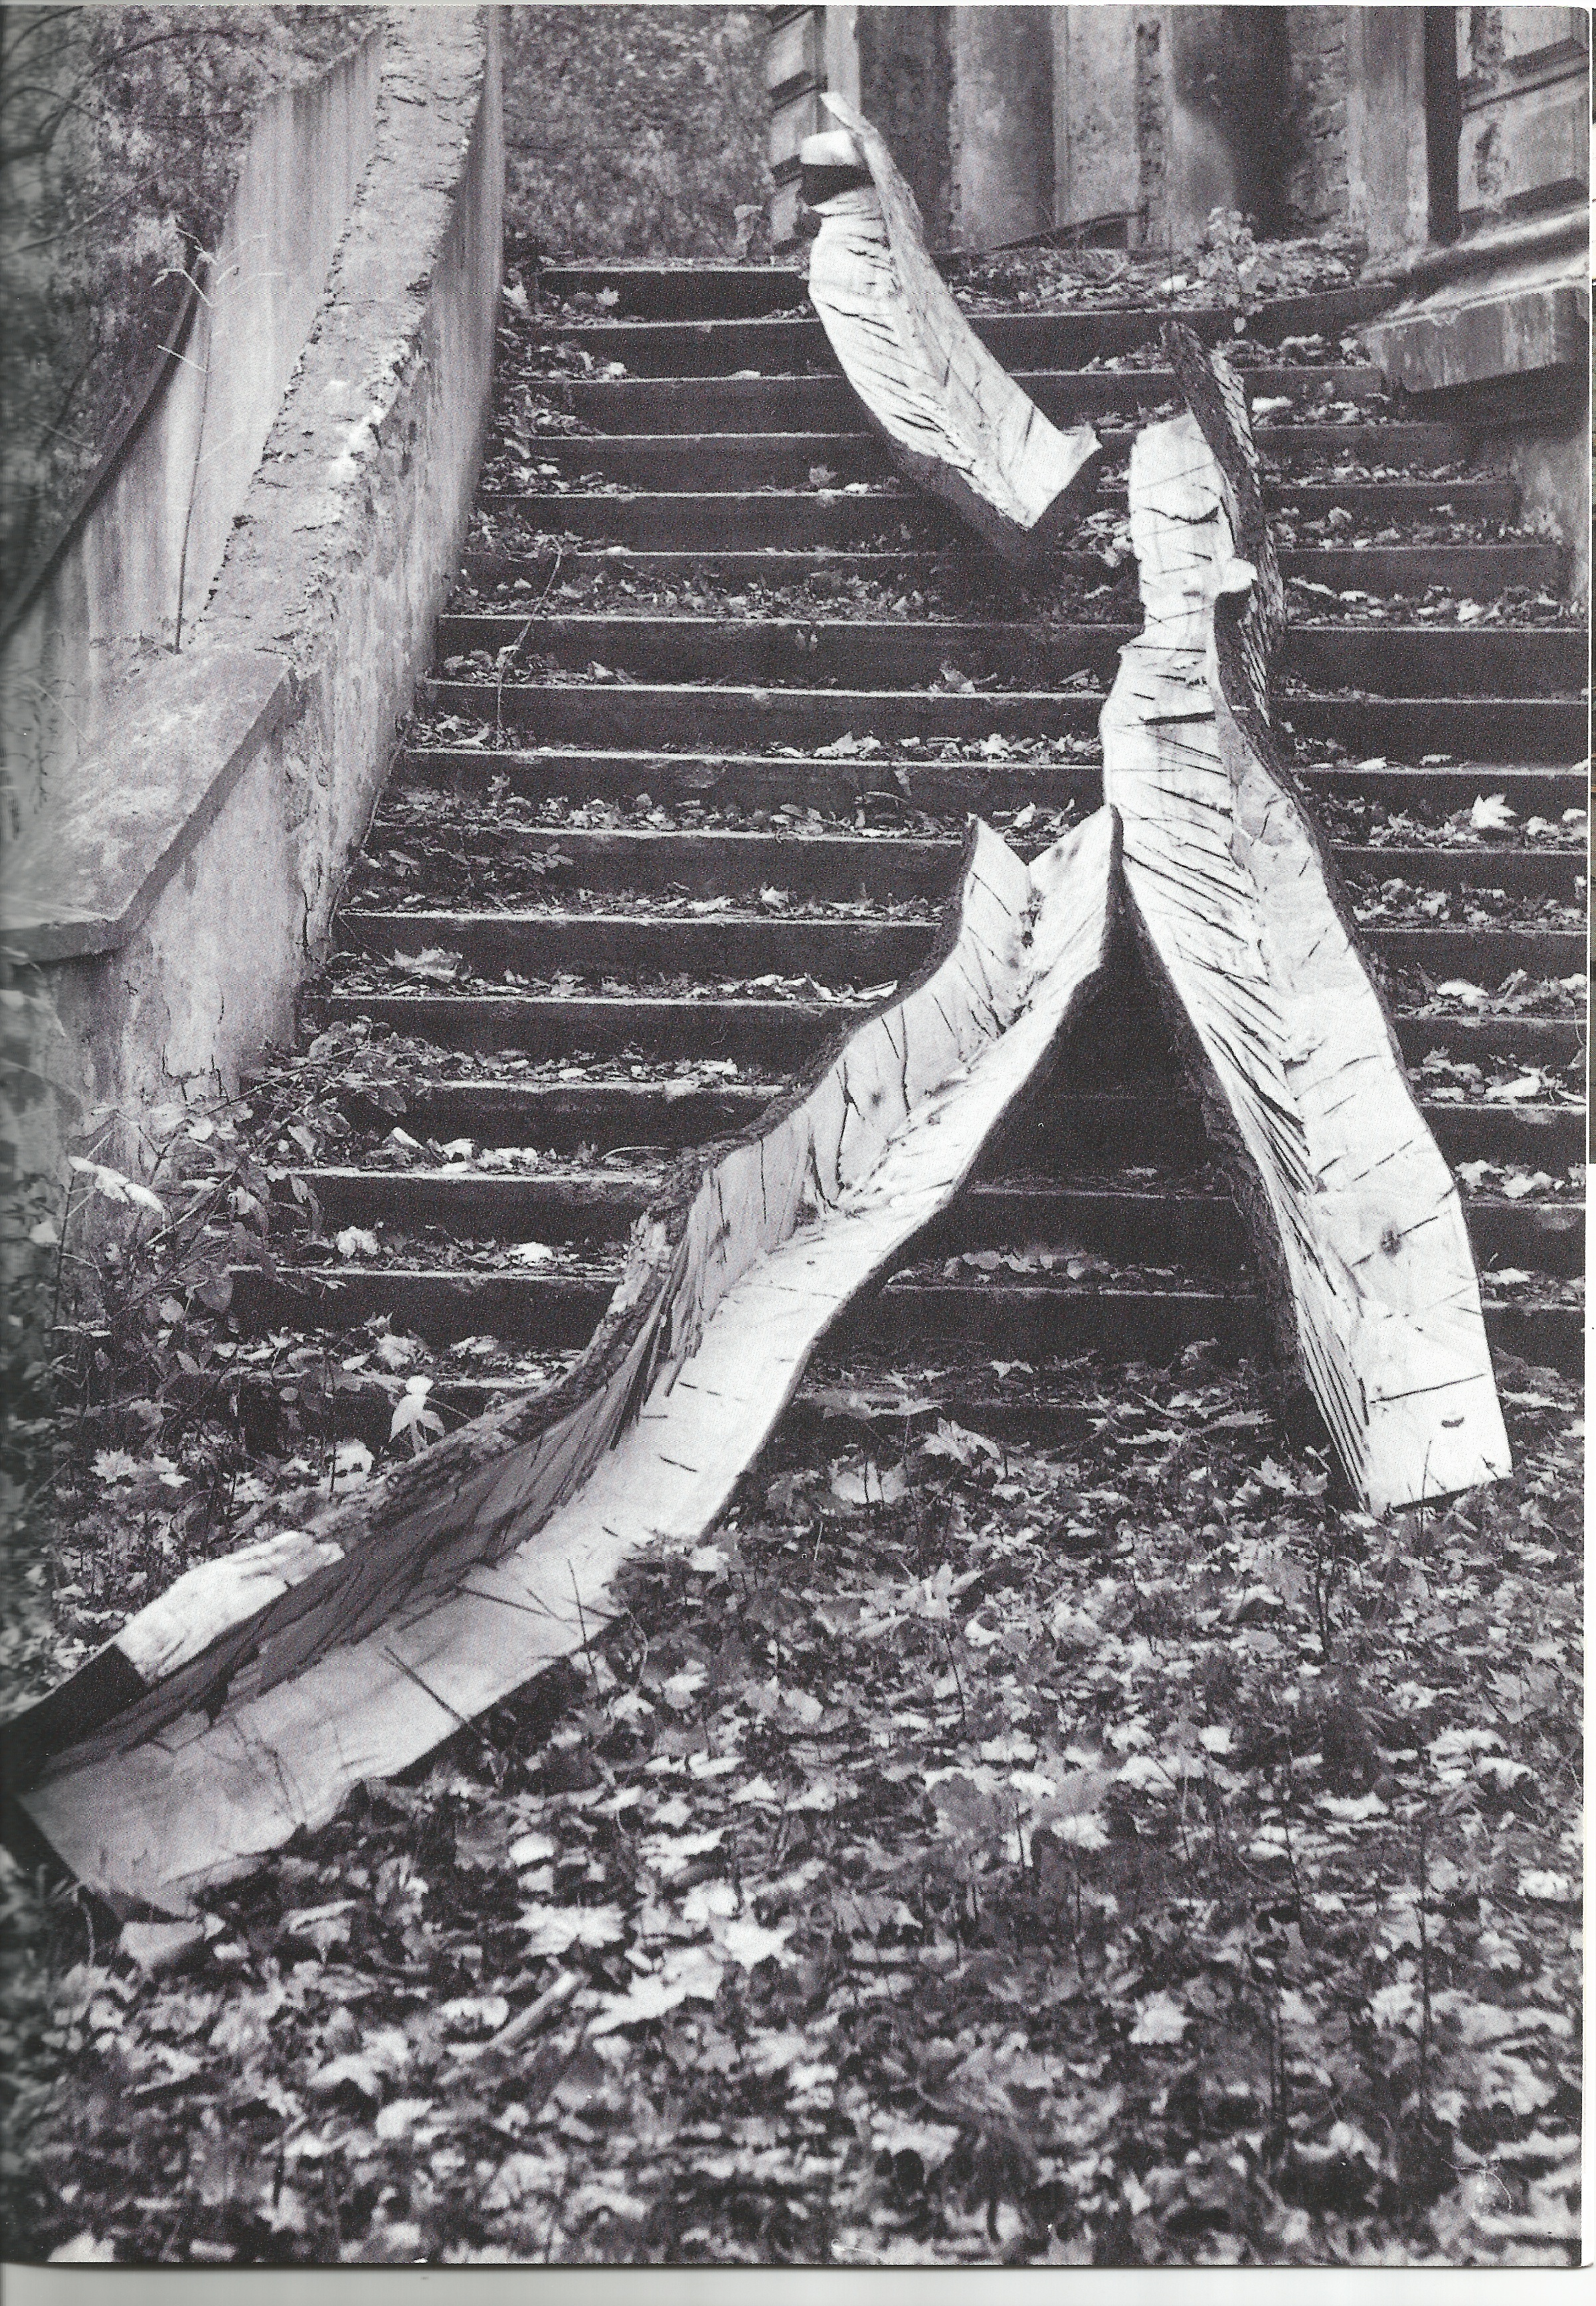 """Maple Cascade , 1993, 14 feet long, 14 feet long, 12 feet long, maple wood. Featured in """"Construction in Process IV – My Home is Your Home"""" outside Grohman Palace, Lodz, Poland in 1993. Photograph by Leszek Czolnowski."""